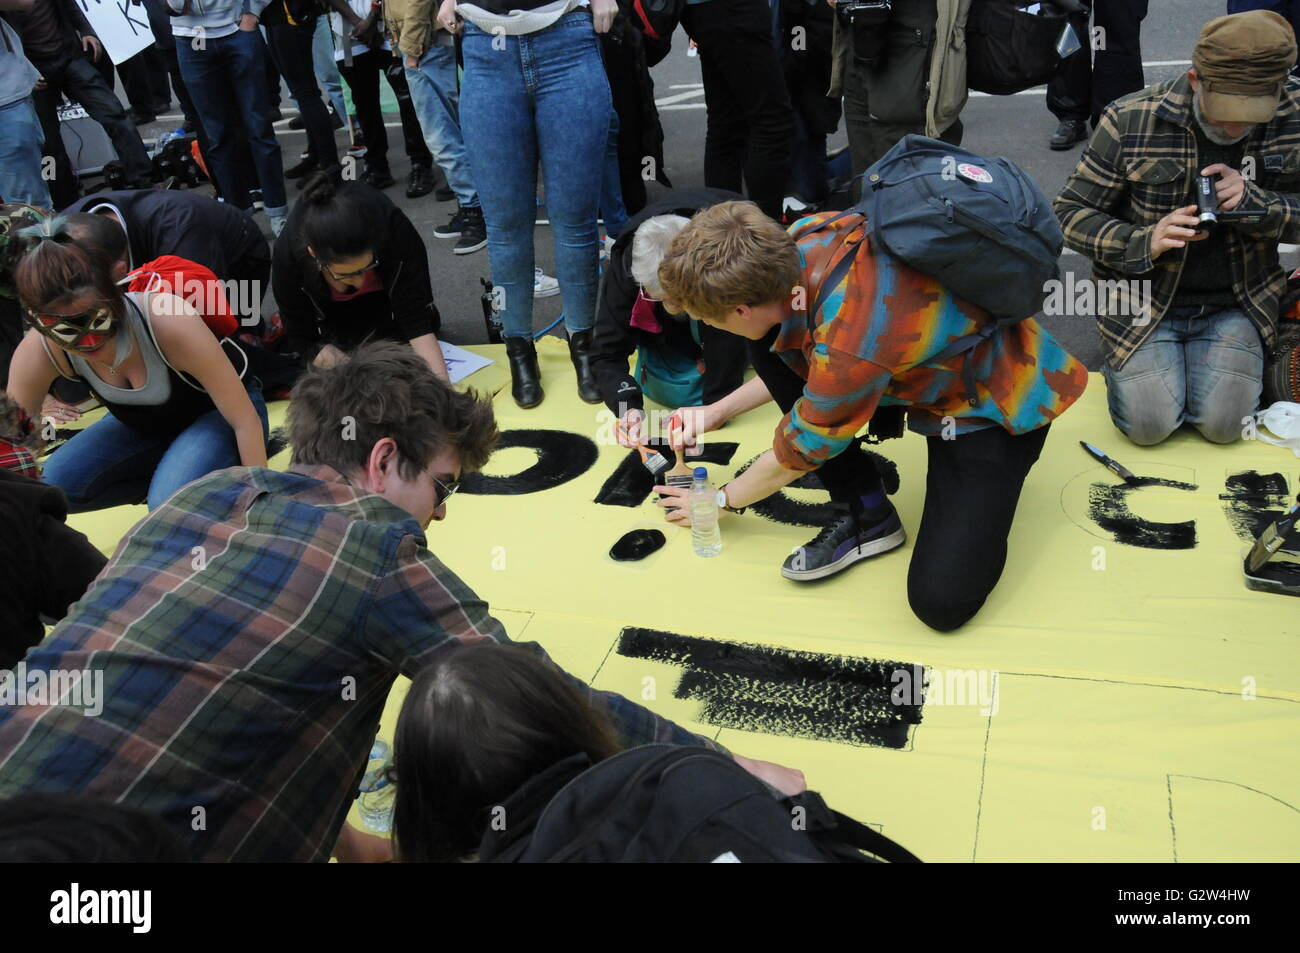 A group of protesters paint an anti austerity message on a banner, on London's Westminster Bridge - Stock Image